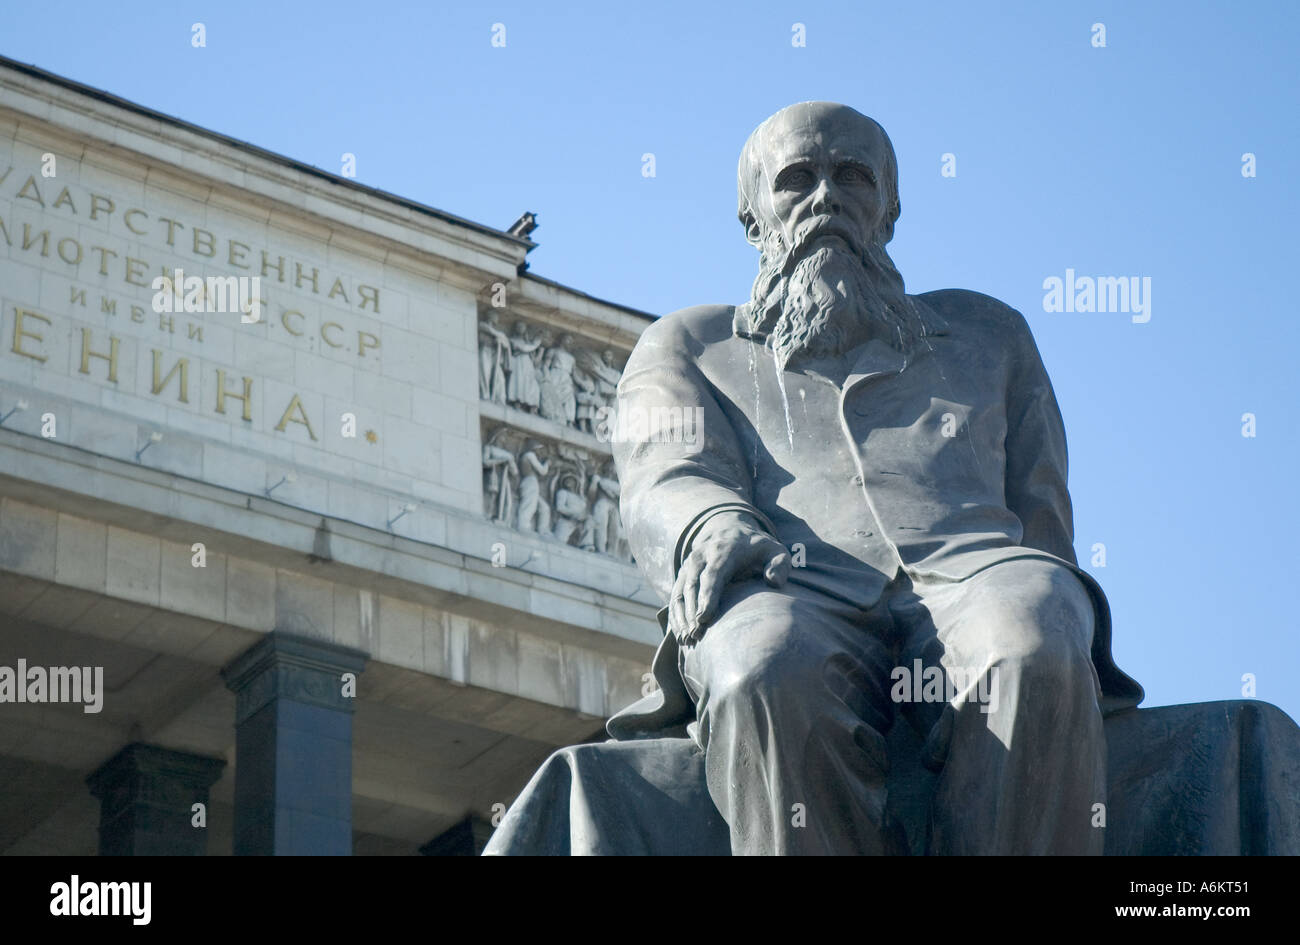 Statue of author Dostoevsky in Moscow, Russia - Stock Image